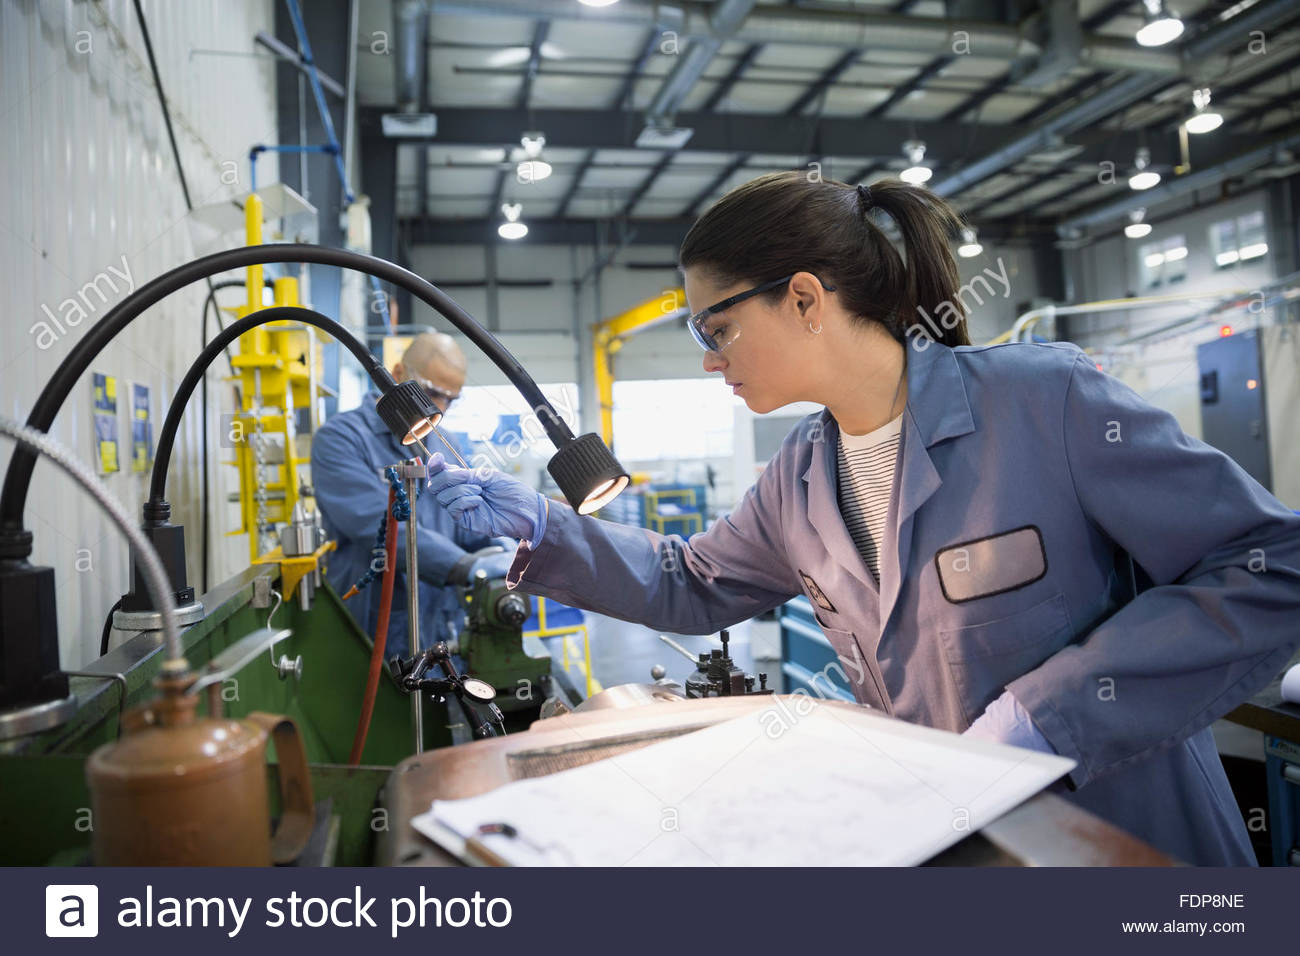 Engineer with clipboard at machinery in textile factory - Stock Image